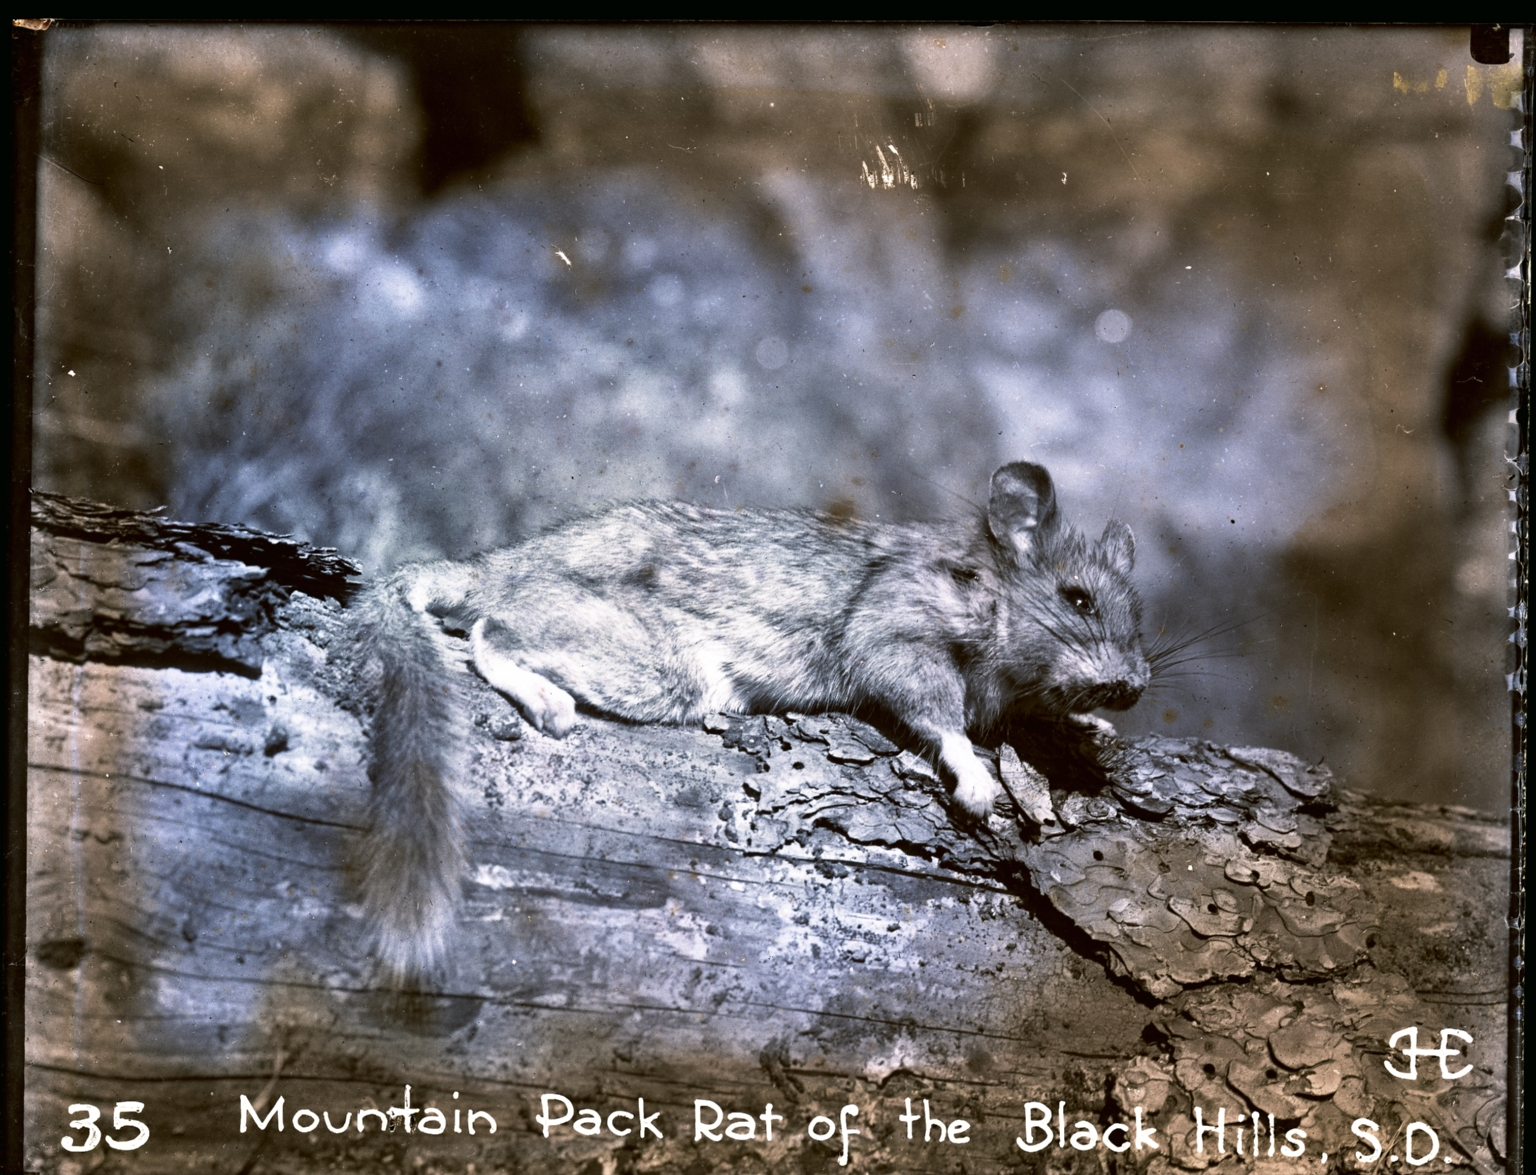 Mountain Pack Rat of the Black Hills, S.D.